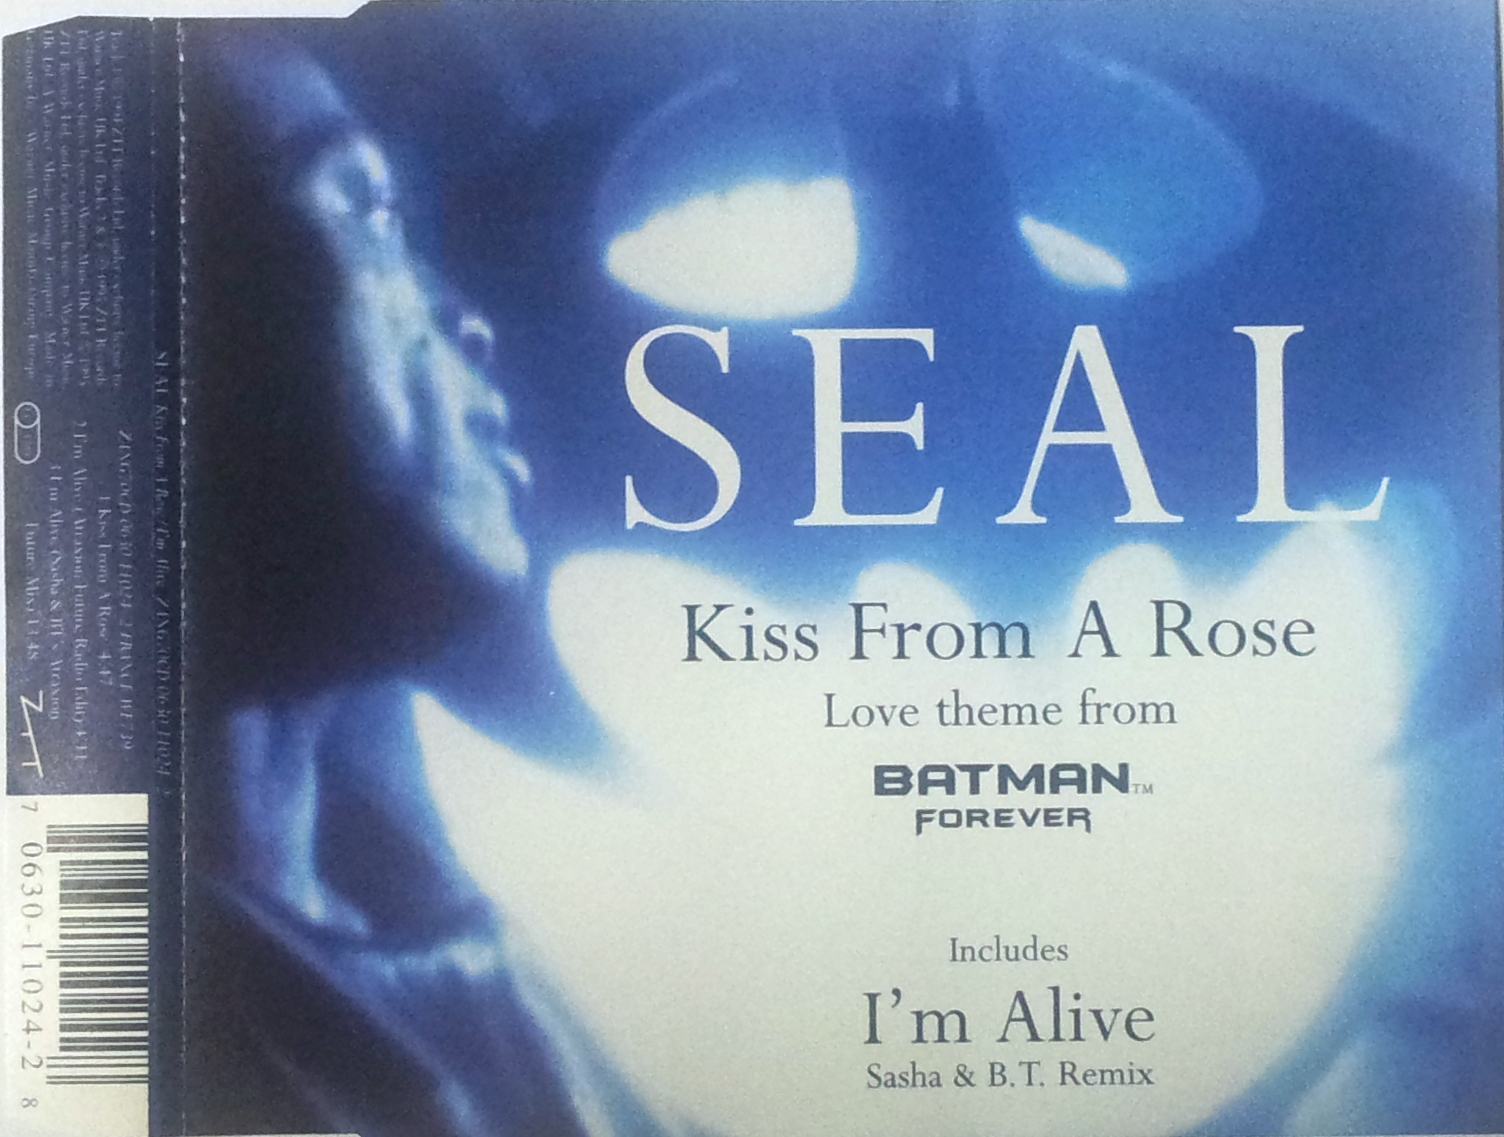 Kiss from a rose (Love theme from Batman)